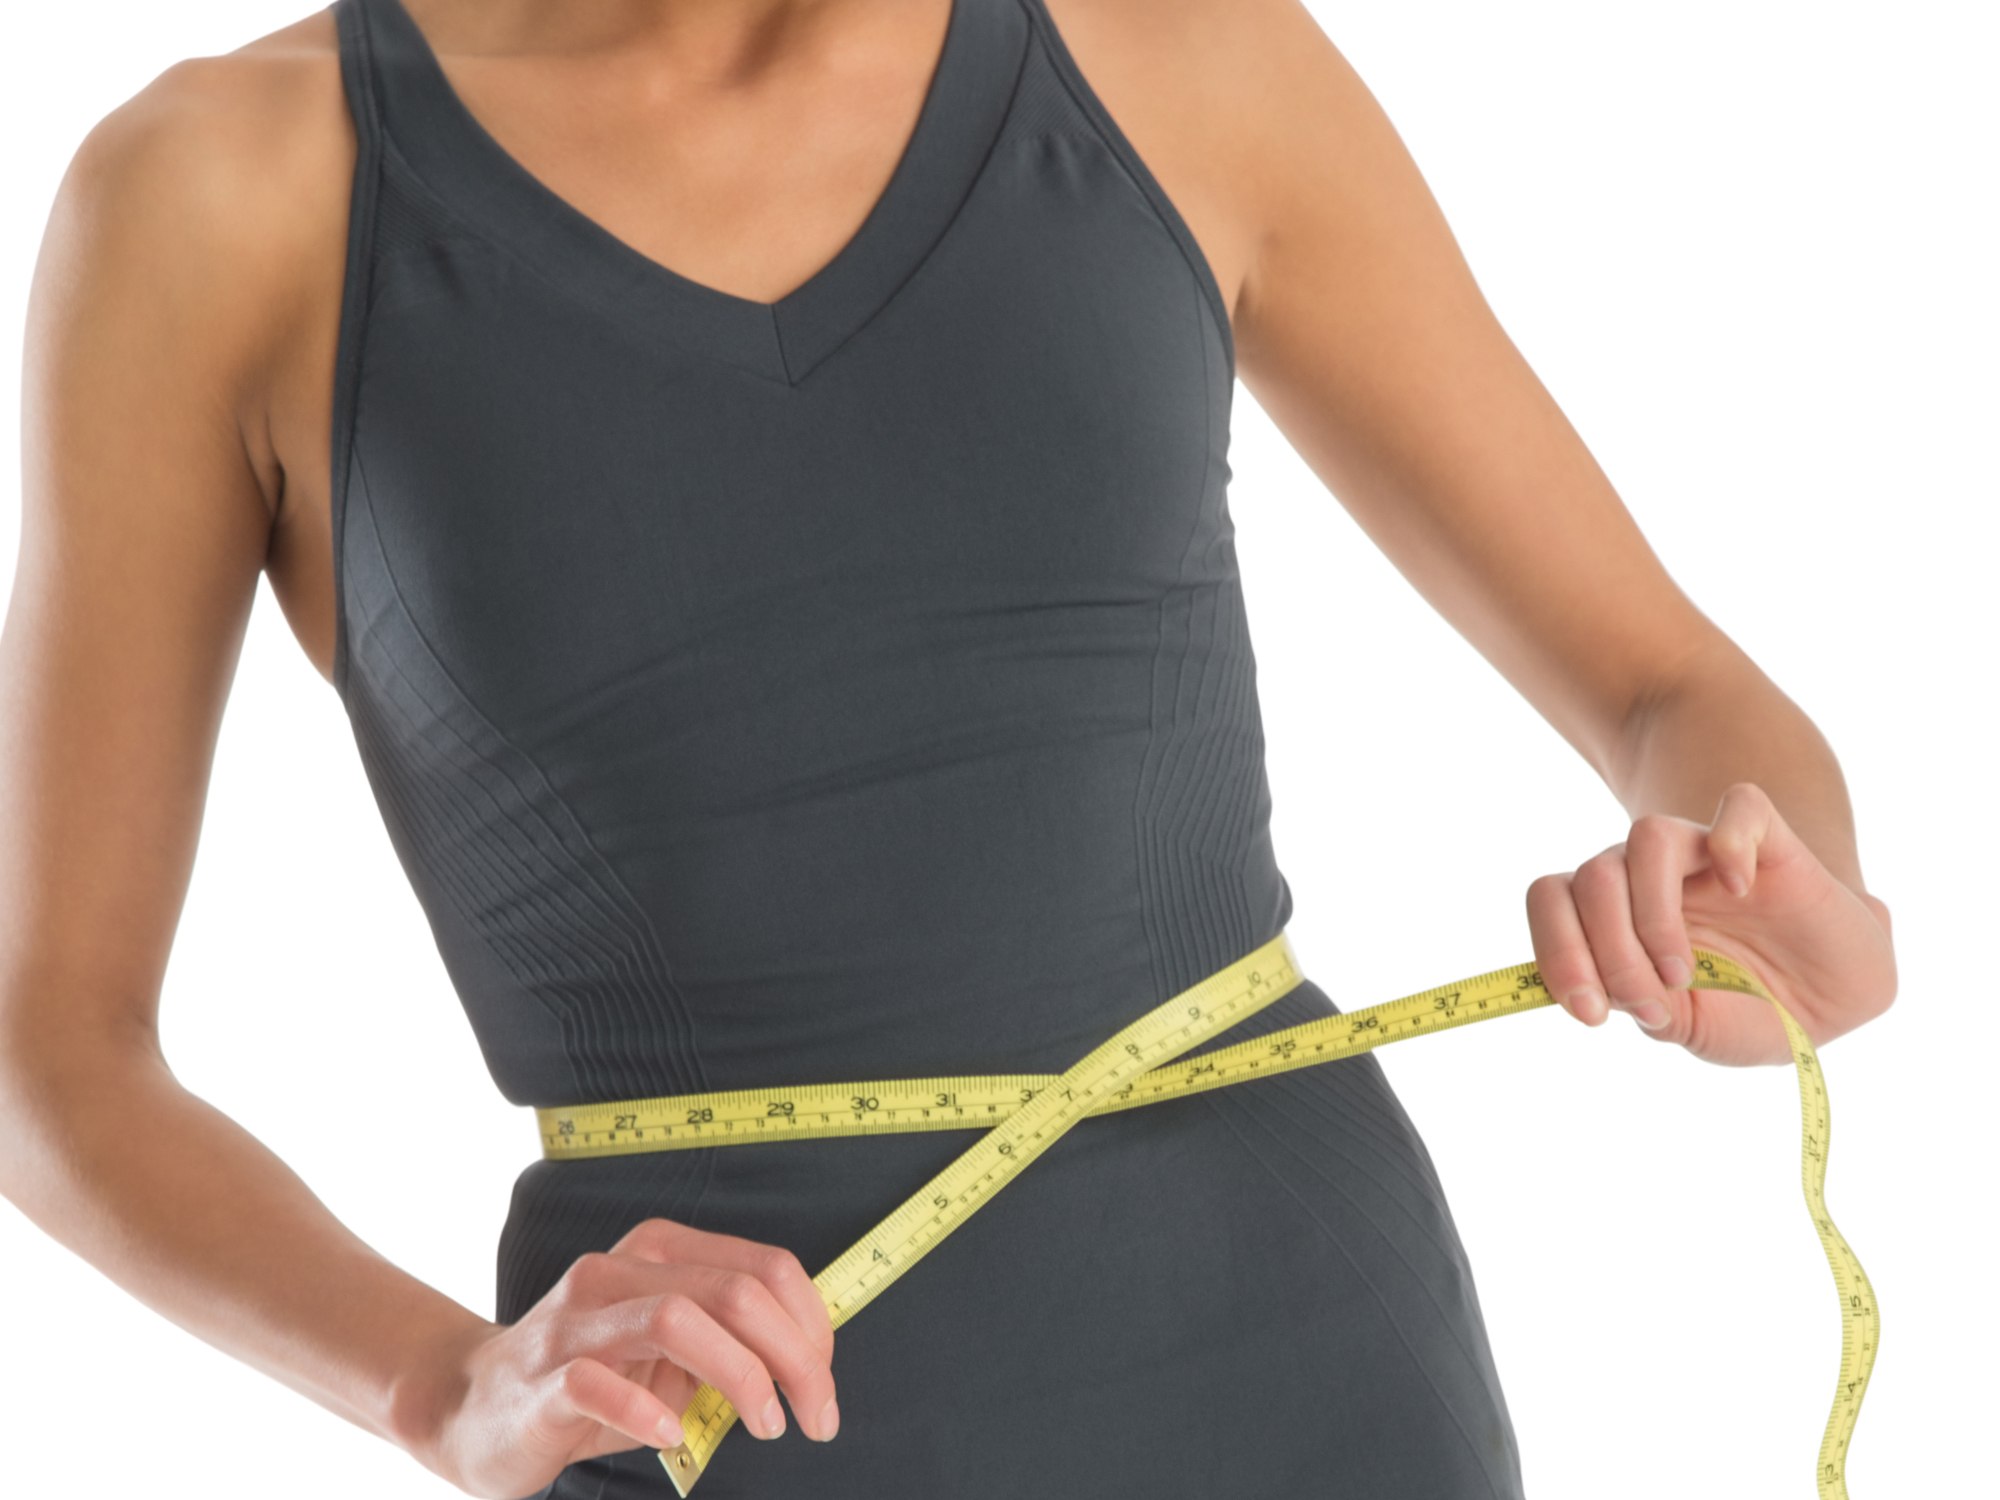 'Vibrate' belly fat and high blood sugar away